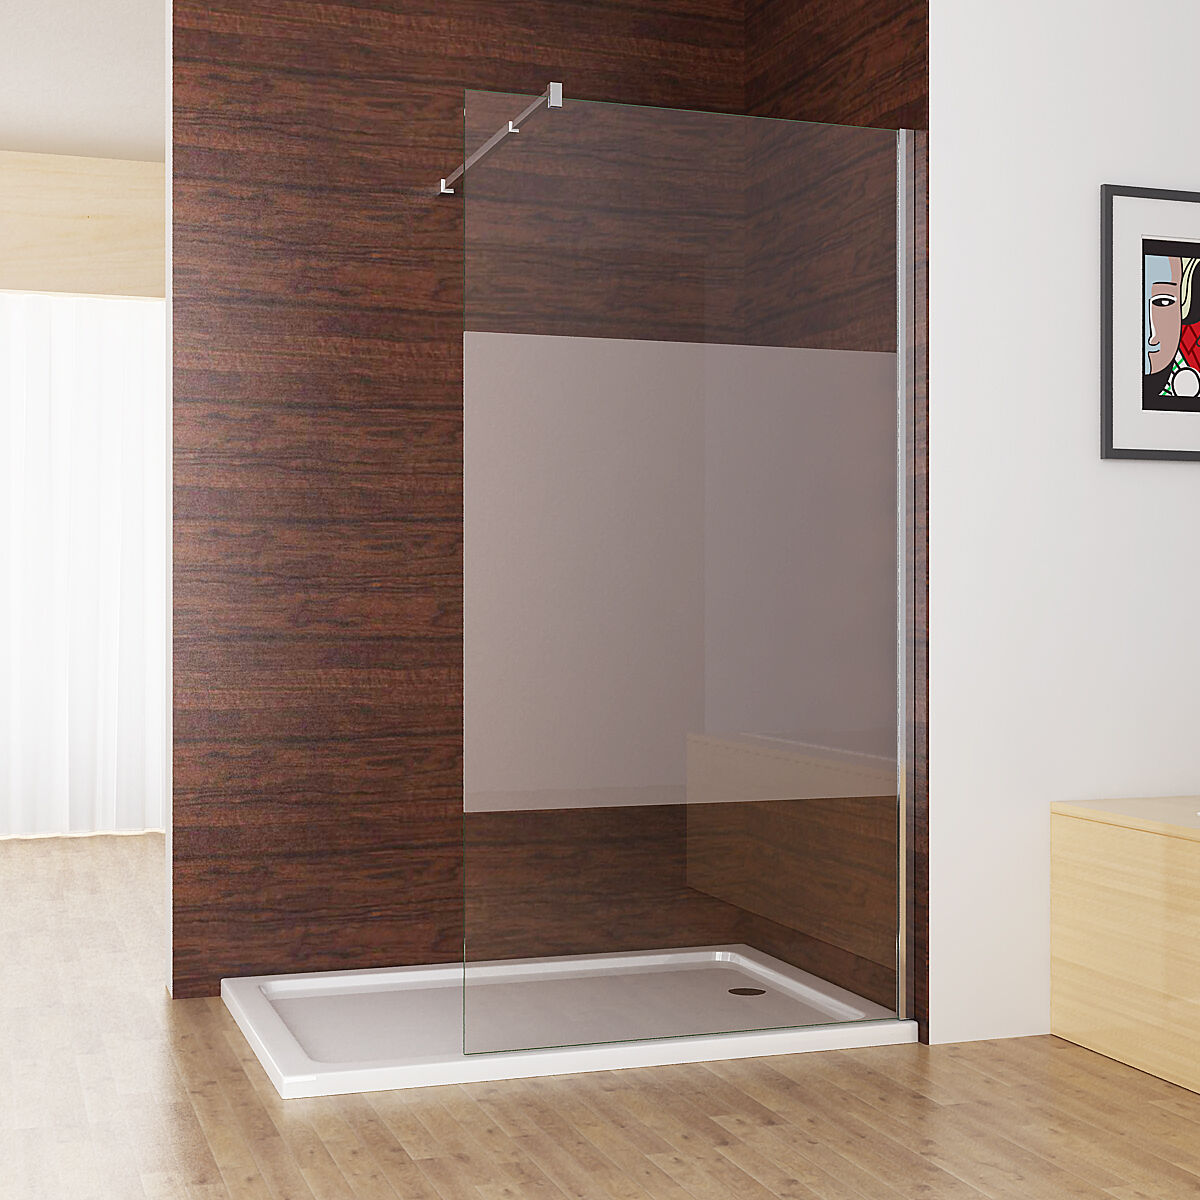 walk in dusche duschwand duschtrennwand duschabtrennung 10mm nano esg glas 200cm ebay. Black Bedroom Furniture Sets. Home Design Ideas